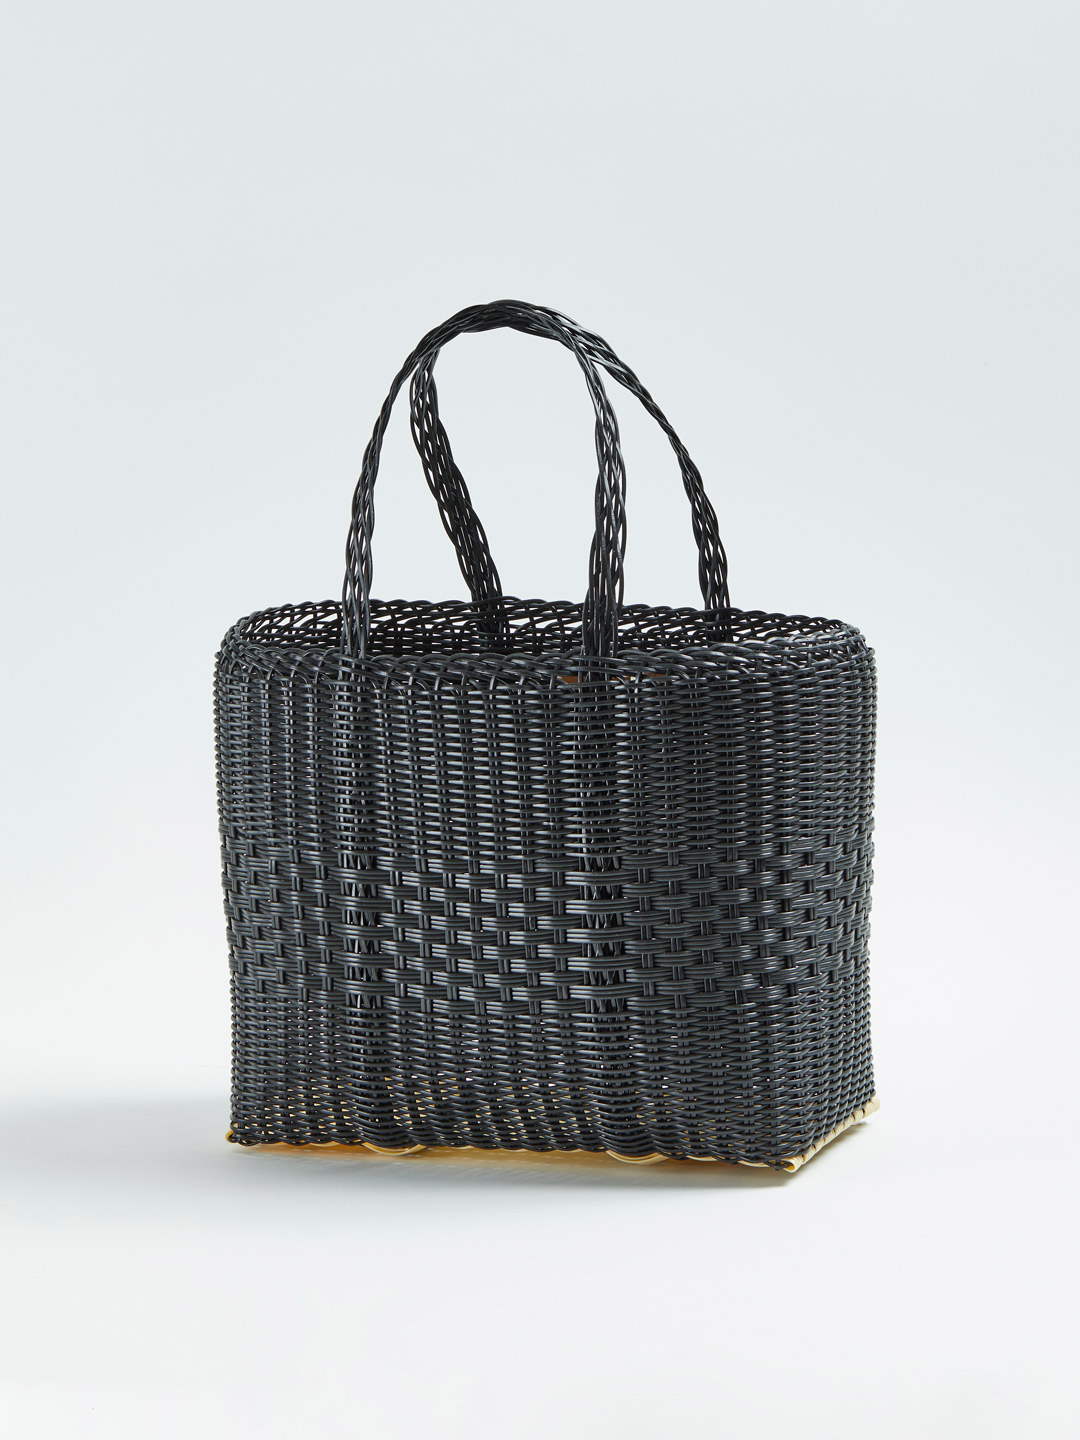 LACE Bag S - Black